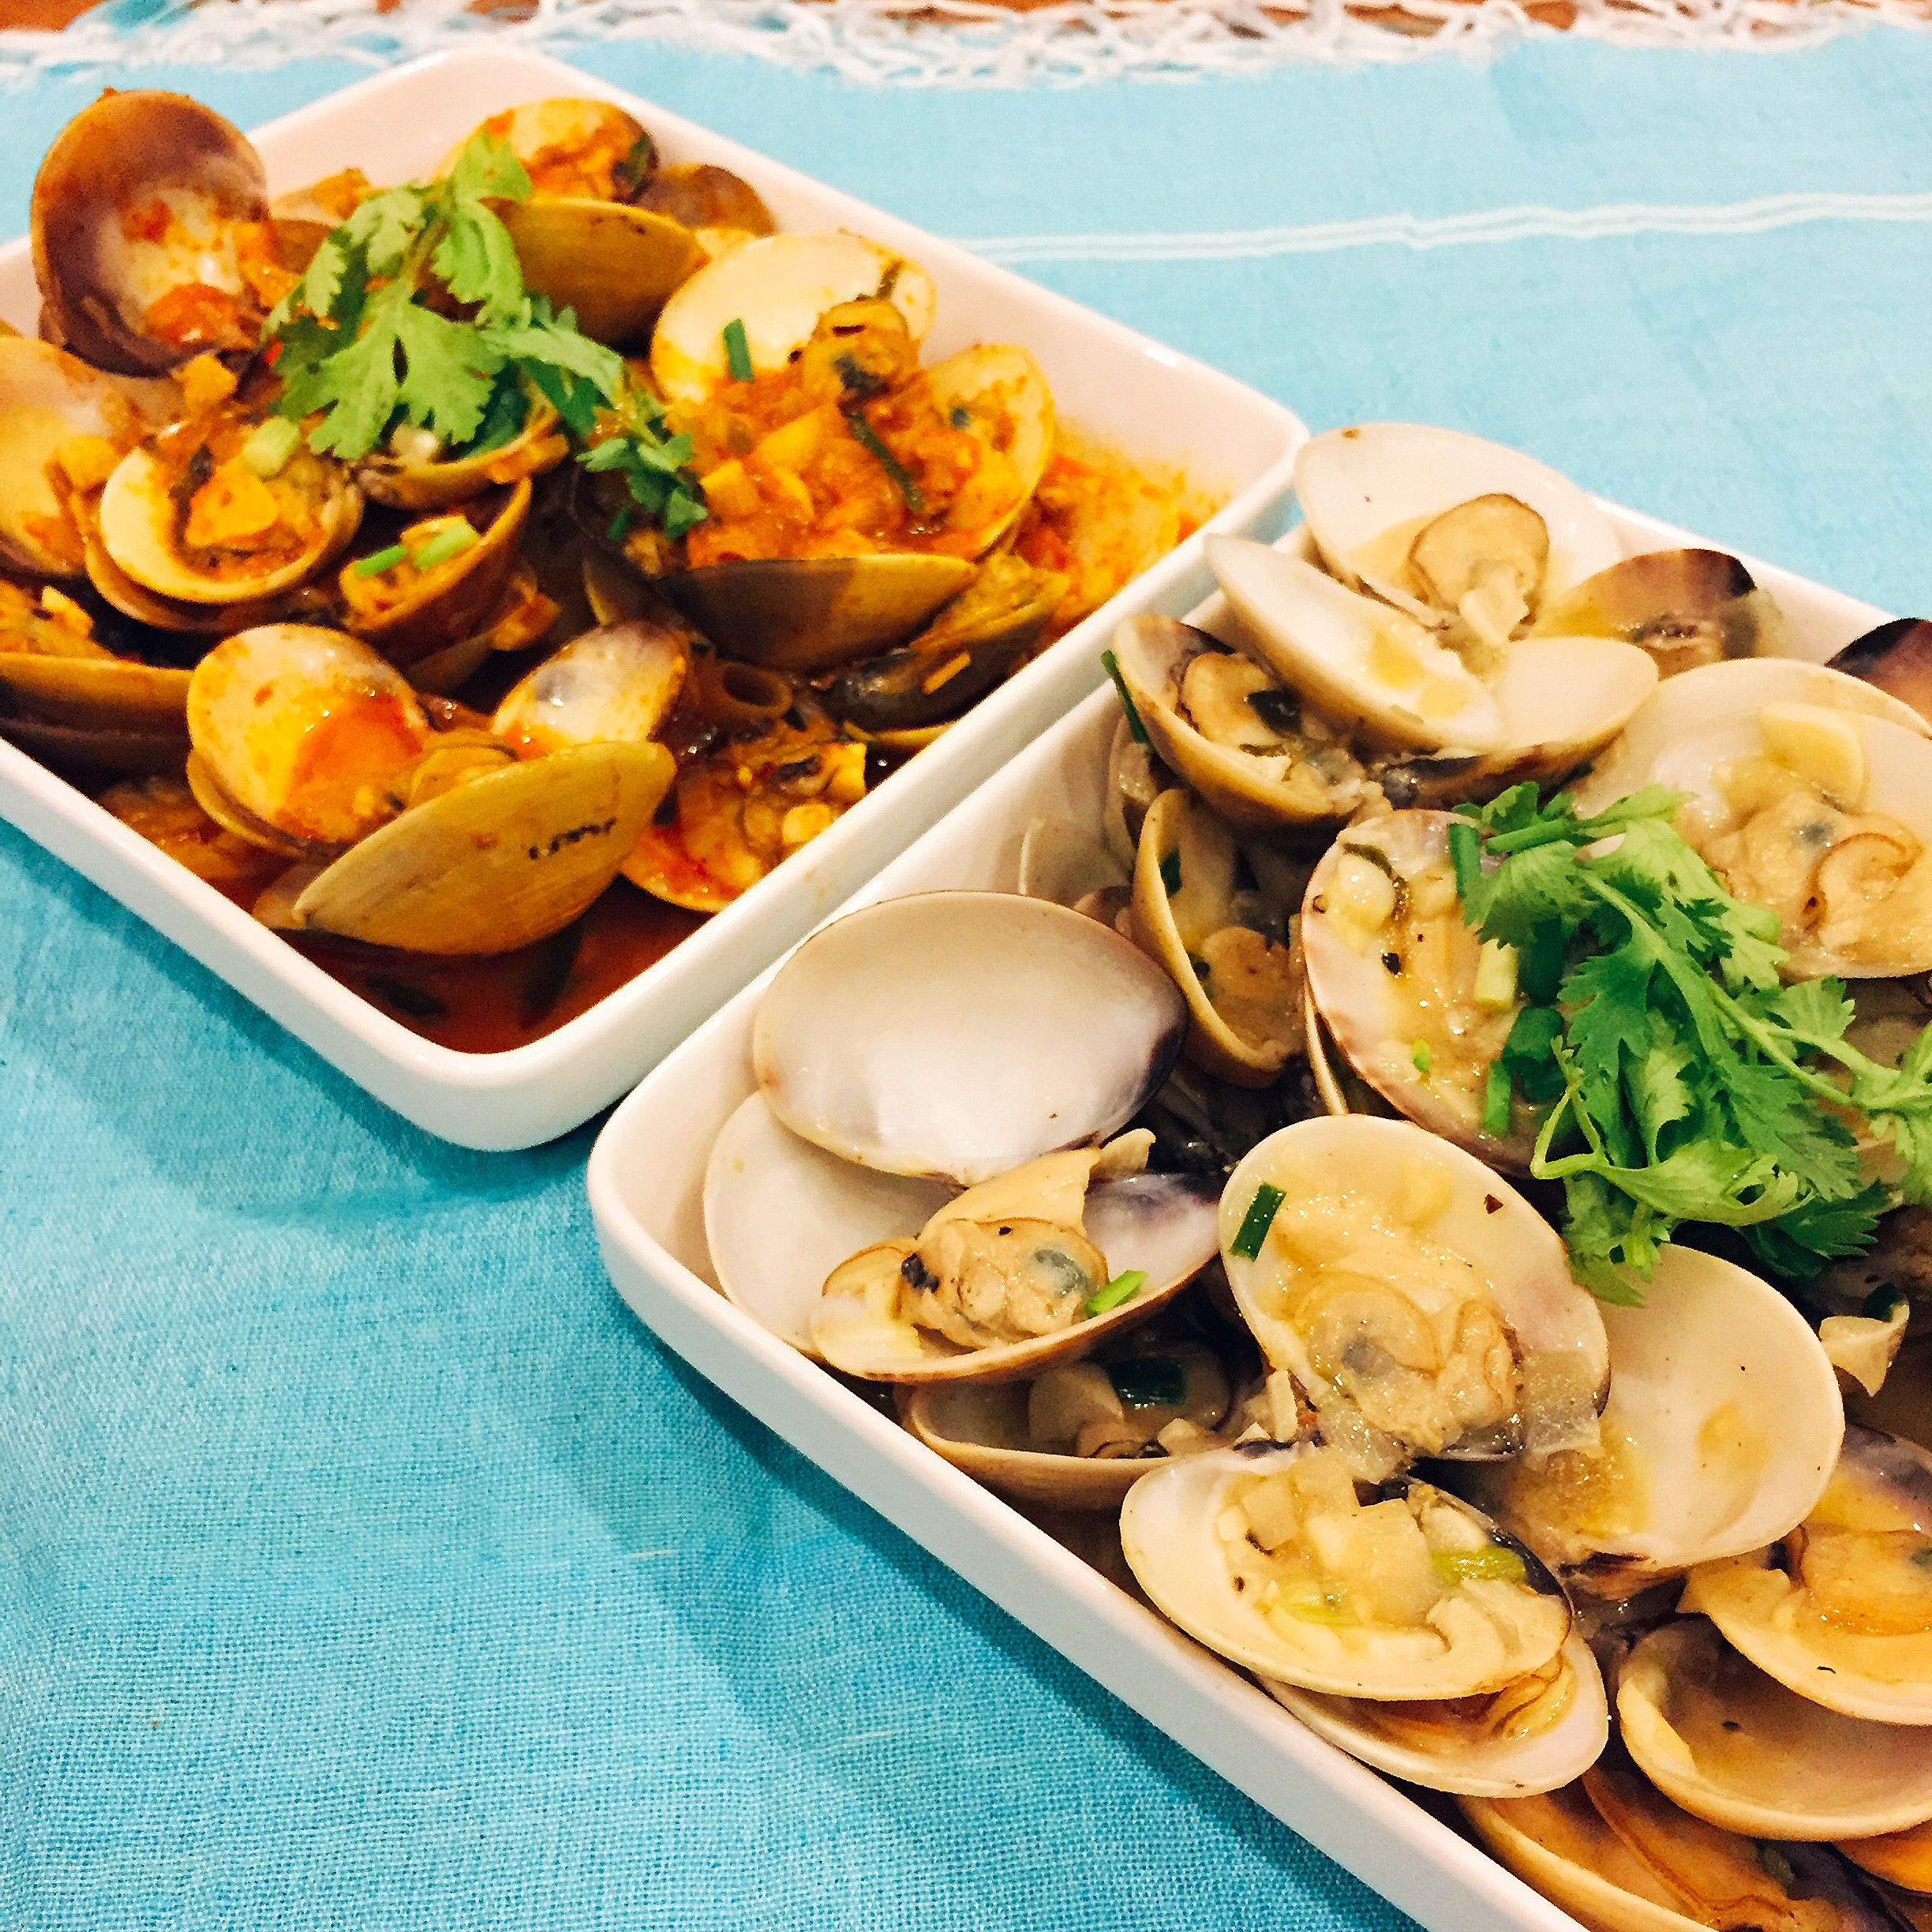 Thai yellow curry clams and butter garlic clams